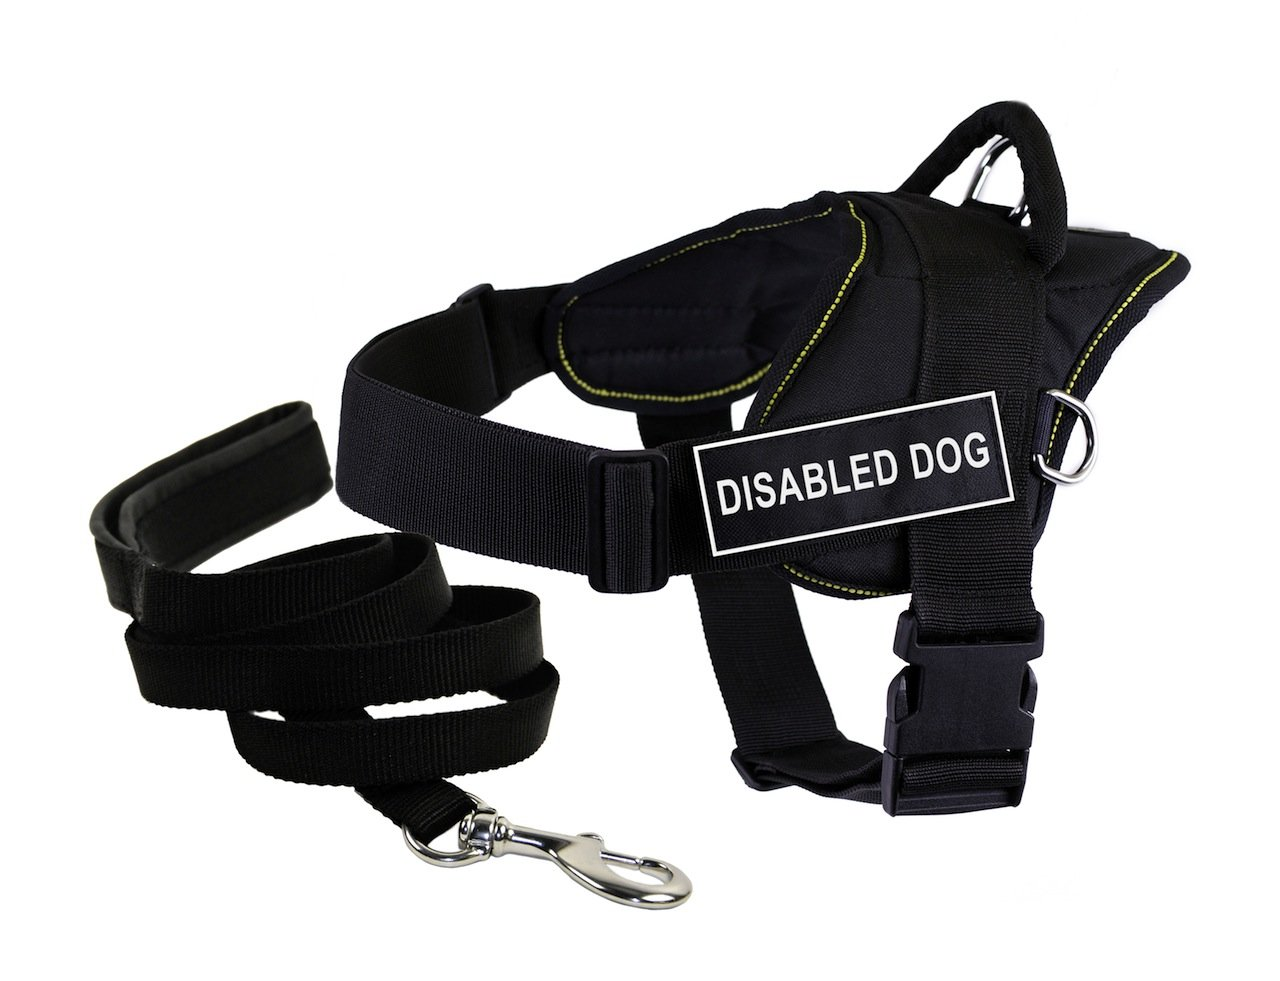 Dean & Tyler Bundle DT Fun Works Yellow Trim X-Large 34 to 47-Inch Disabled Dog  Harness with Padded Puppy Leash and 6-Feet Stainless Steel Snap, Black